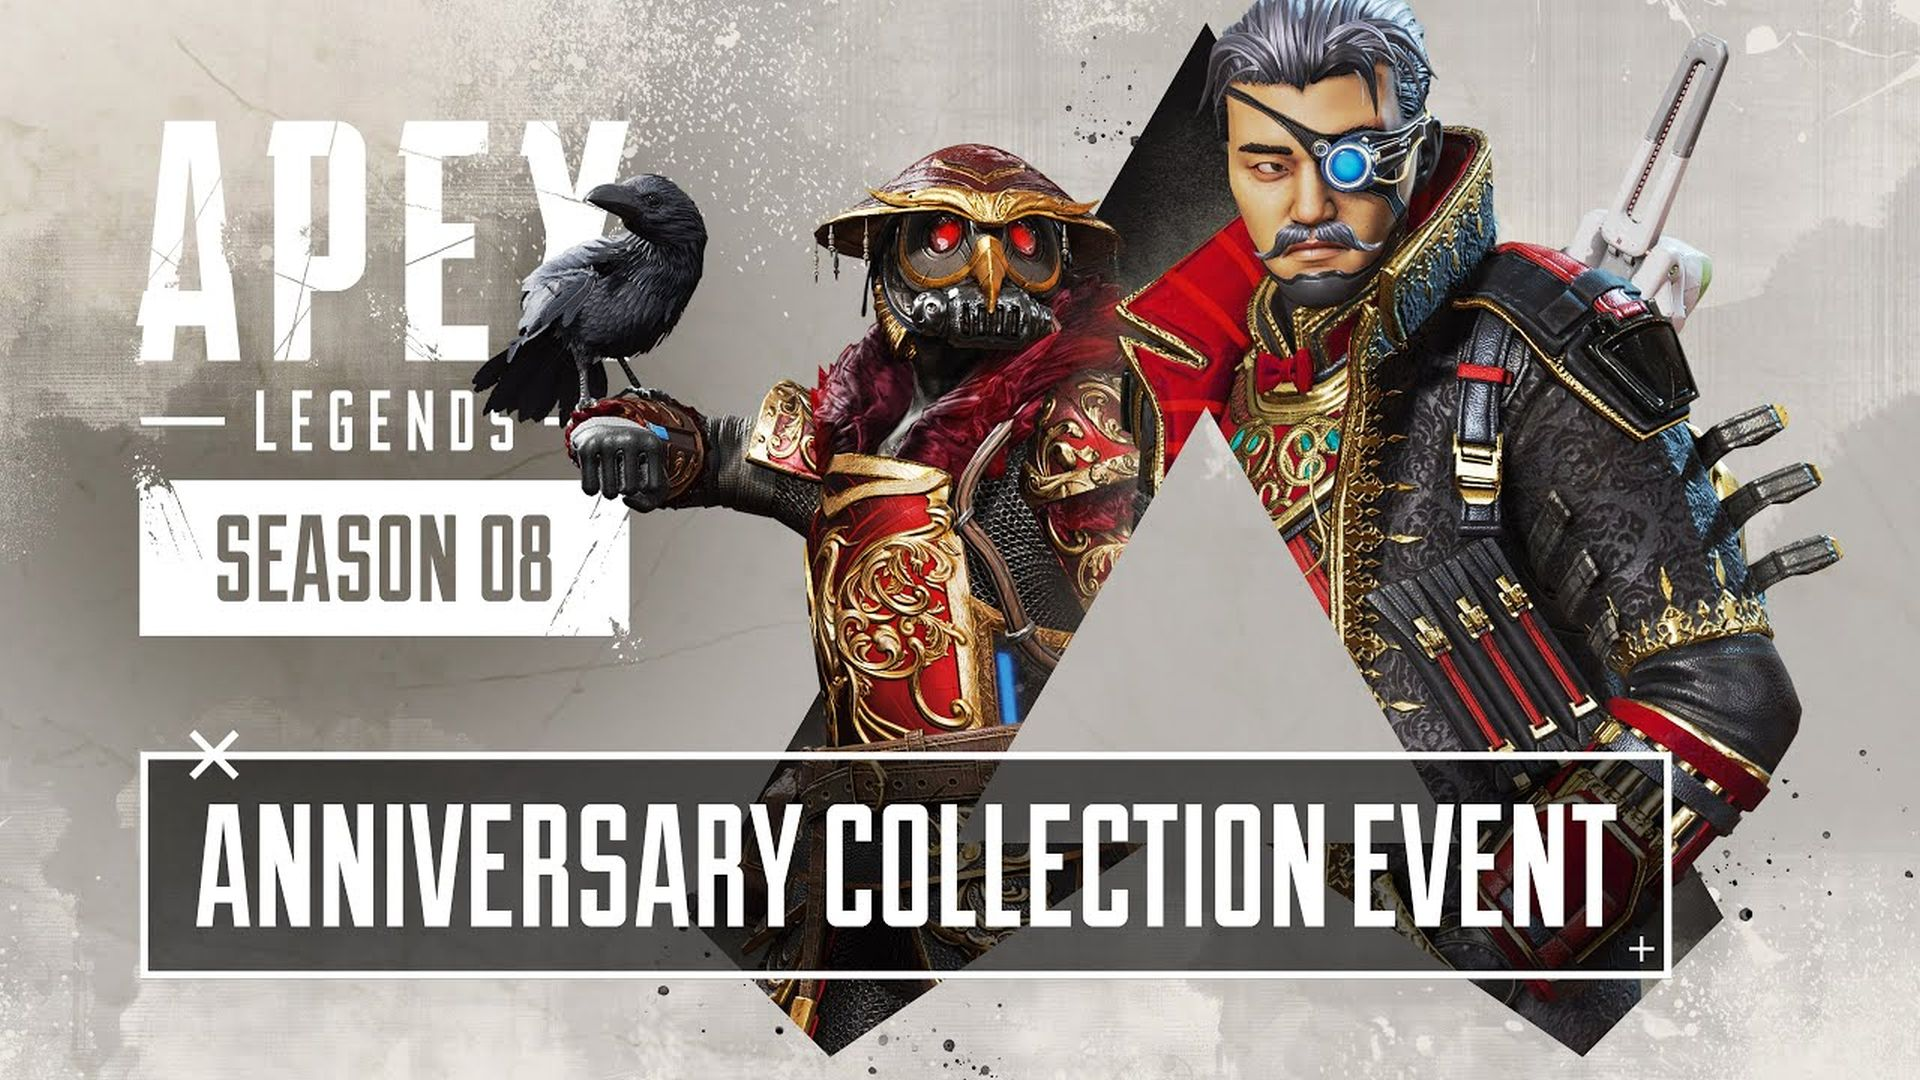 Apex Legends - Anniversary Collection Event